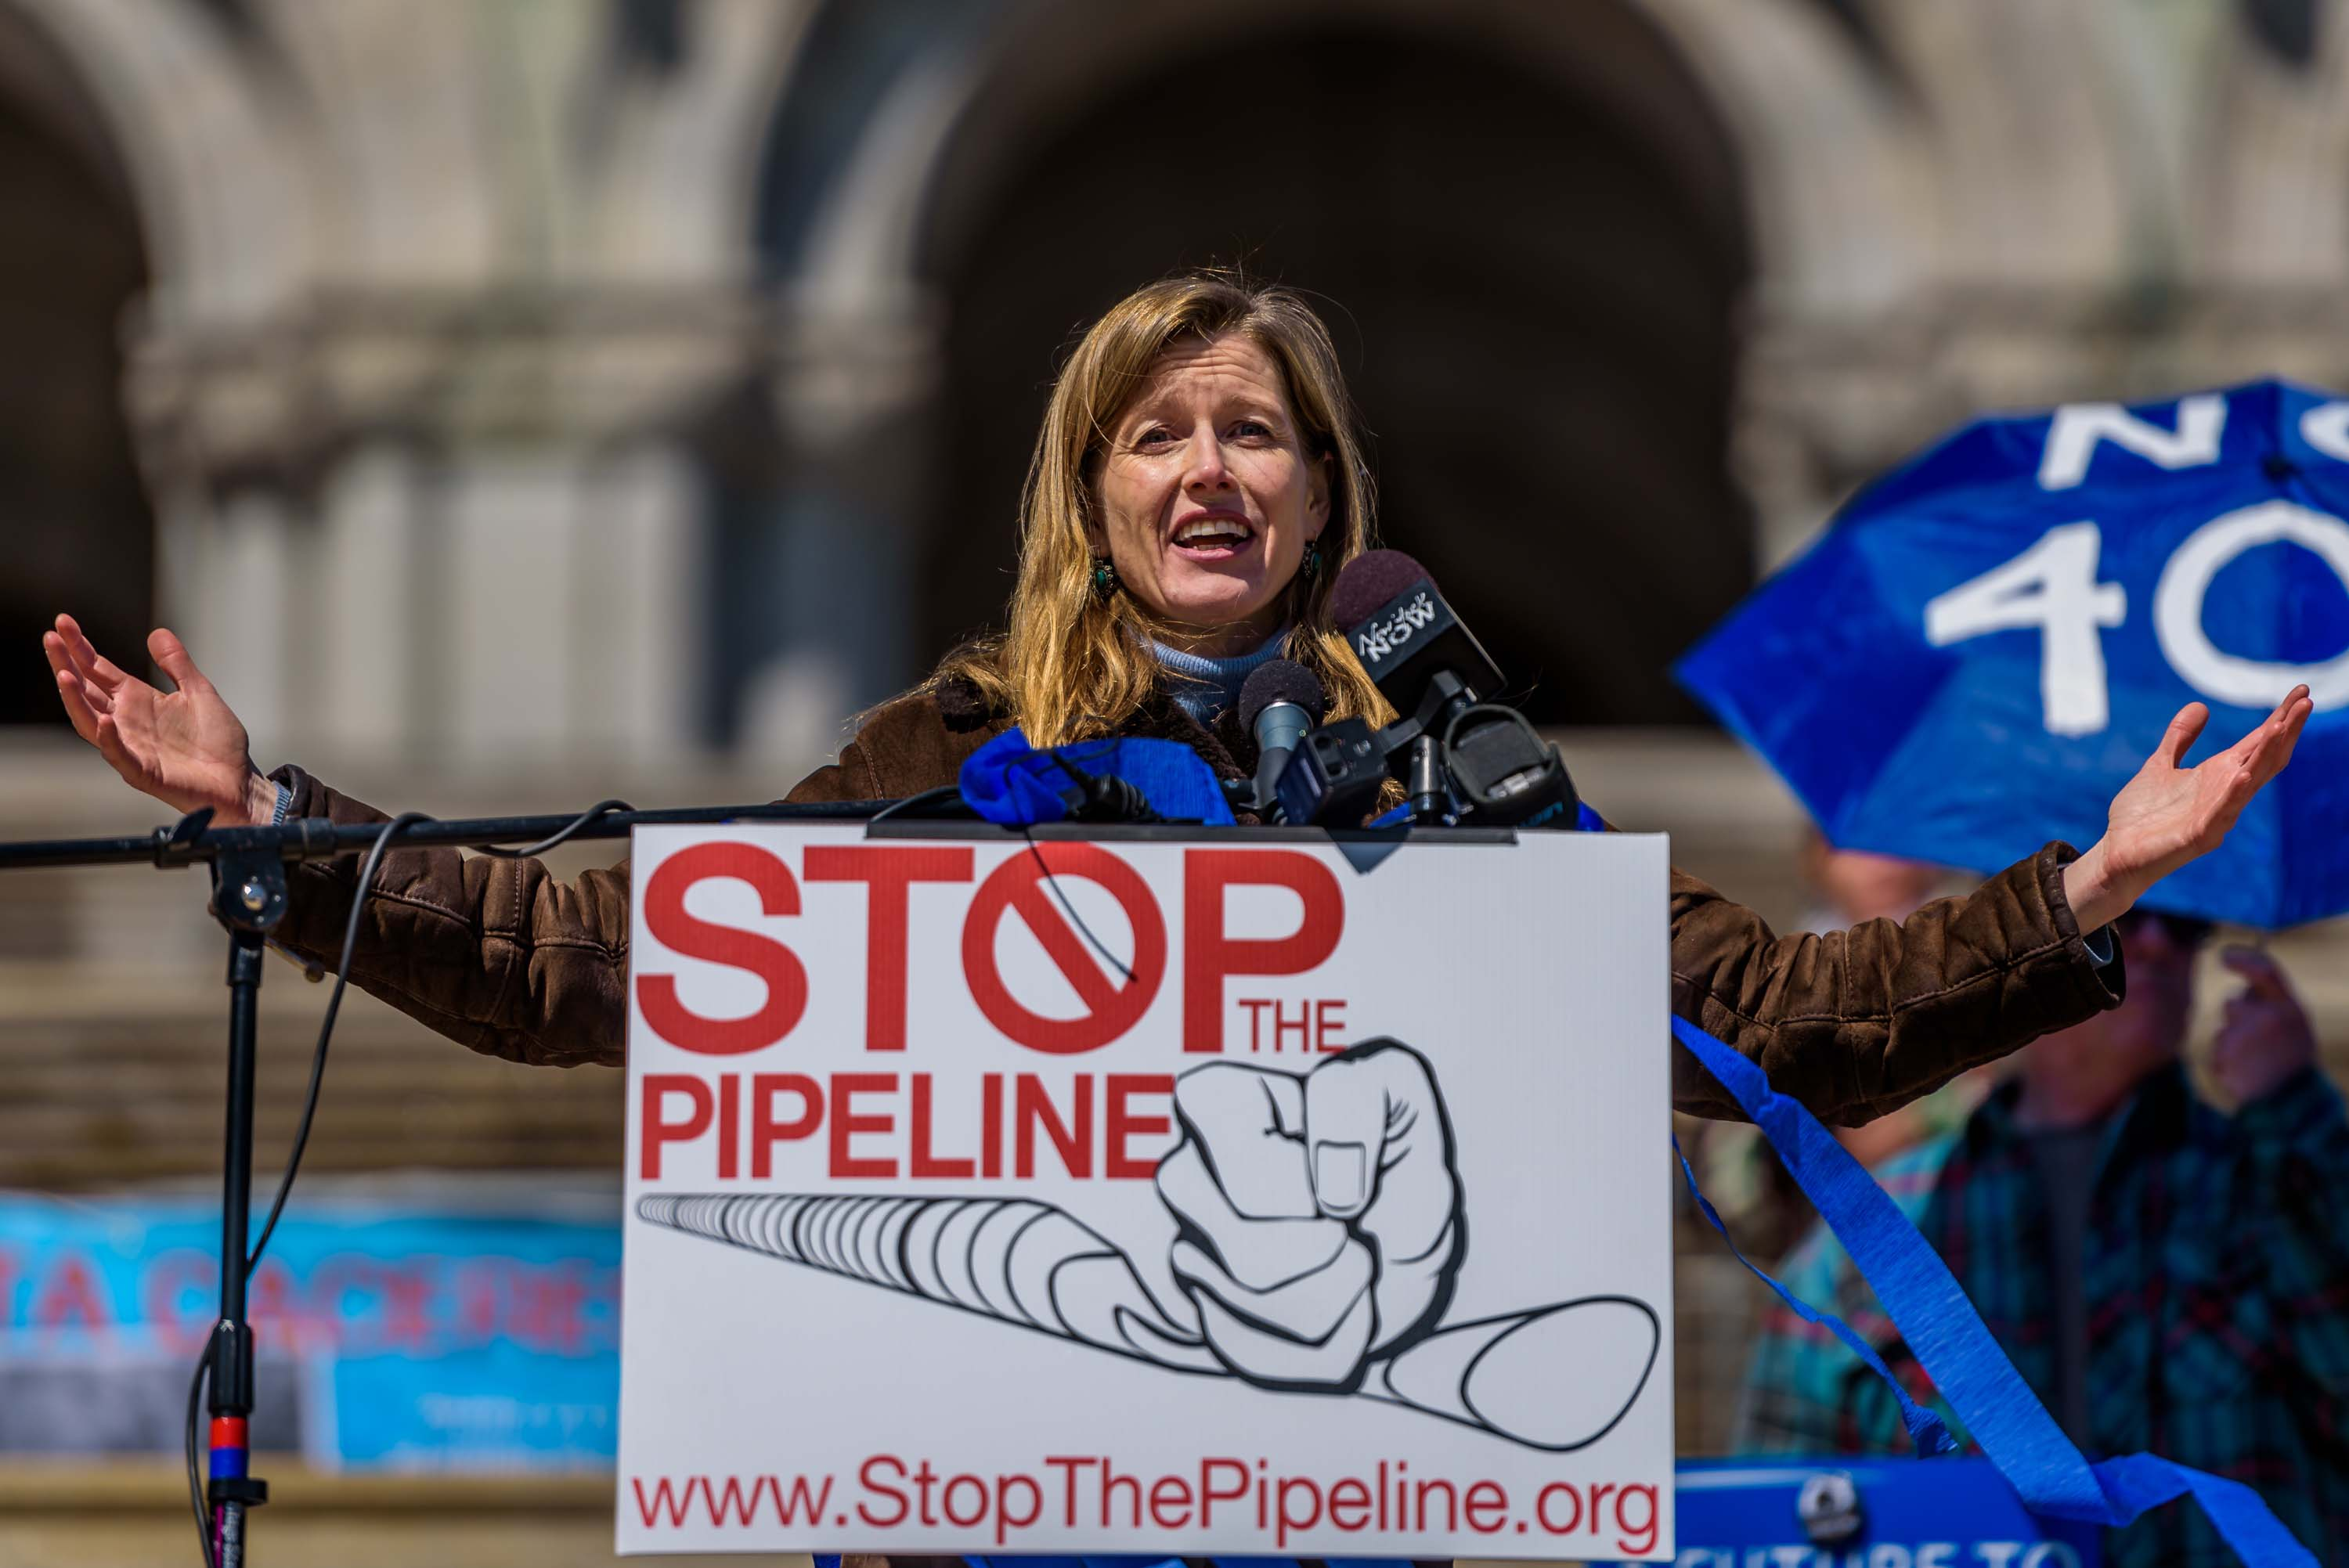 Karenna Gore, Director of the Center of Earth Ethics at Columbia University speaking at the rally to save NYS from FERC and to ask Governor Cuomo to protect NYS water by denying required water quality certificate for Constitution Pipeline